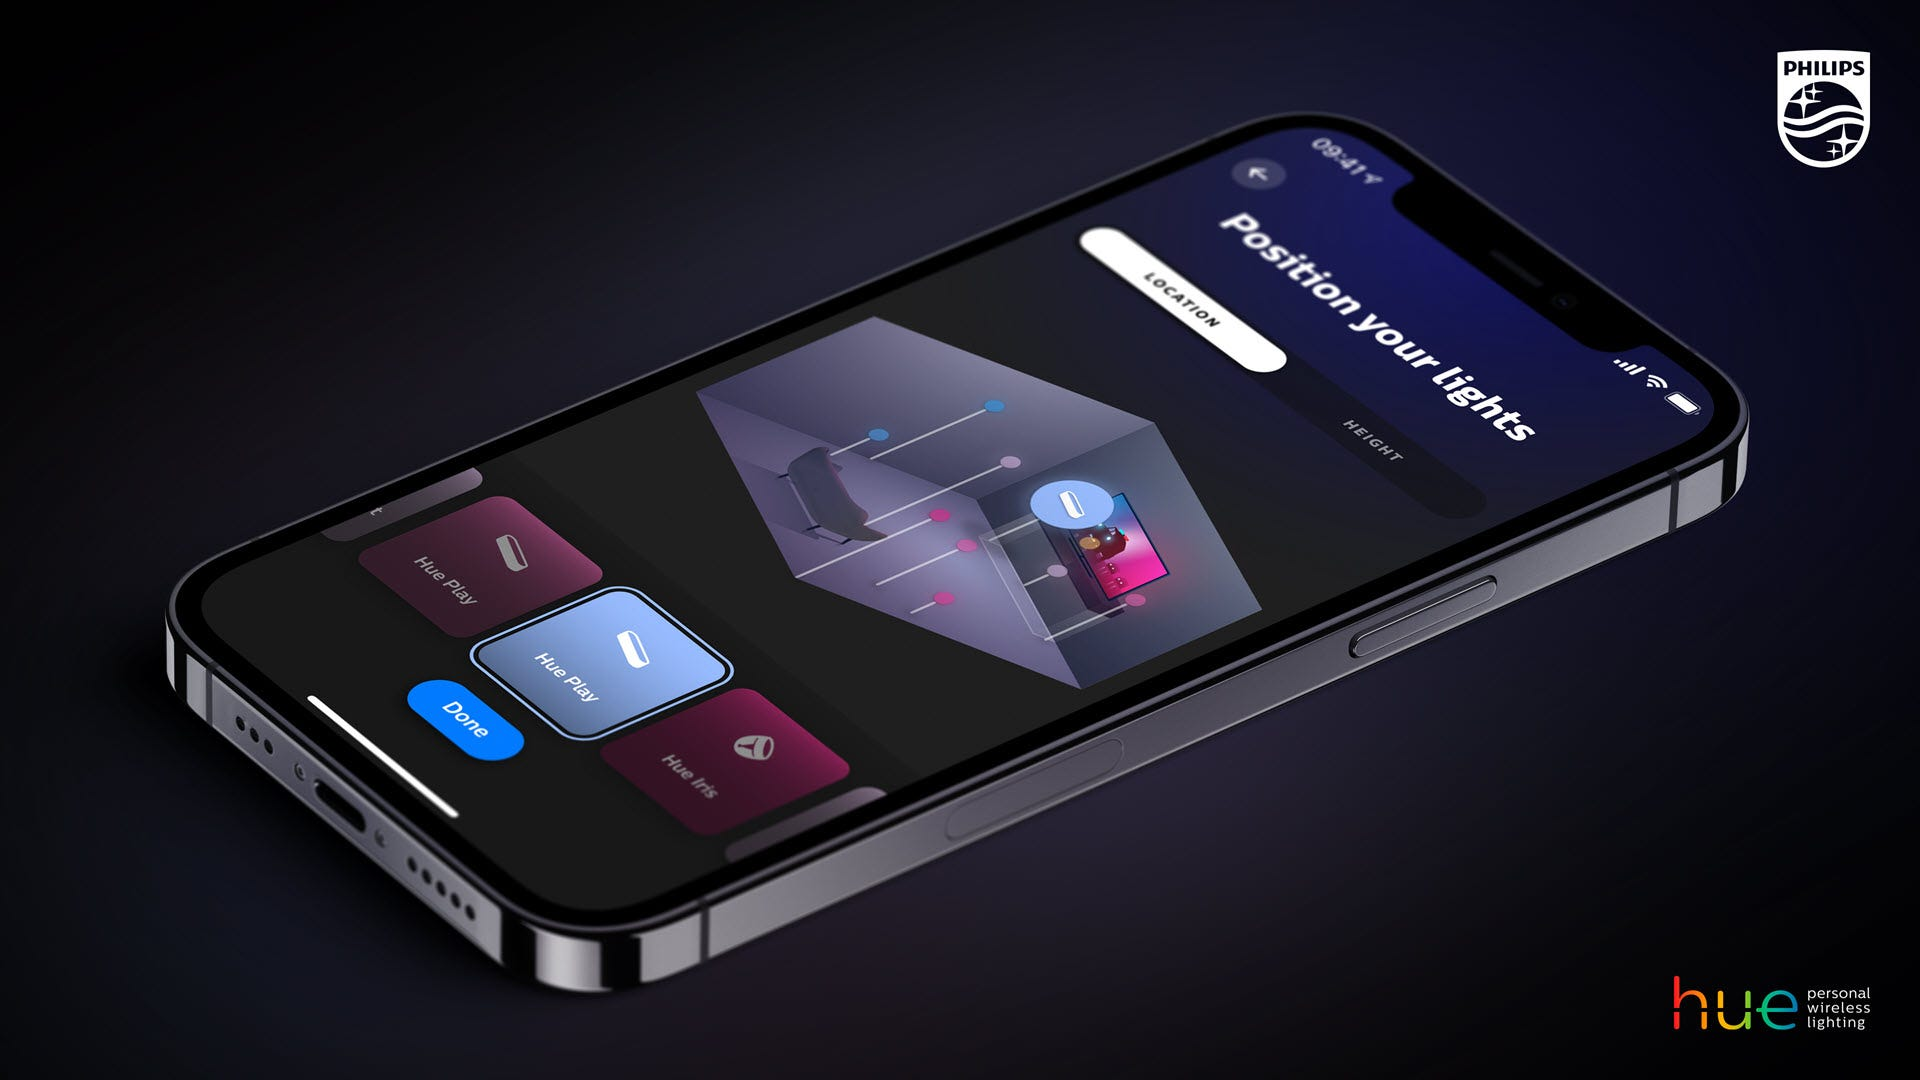 The Philips Hue app with a room position interface.